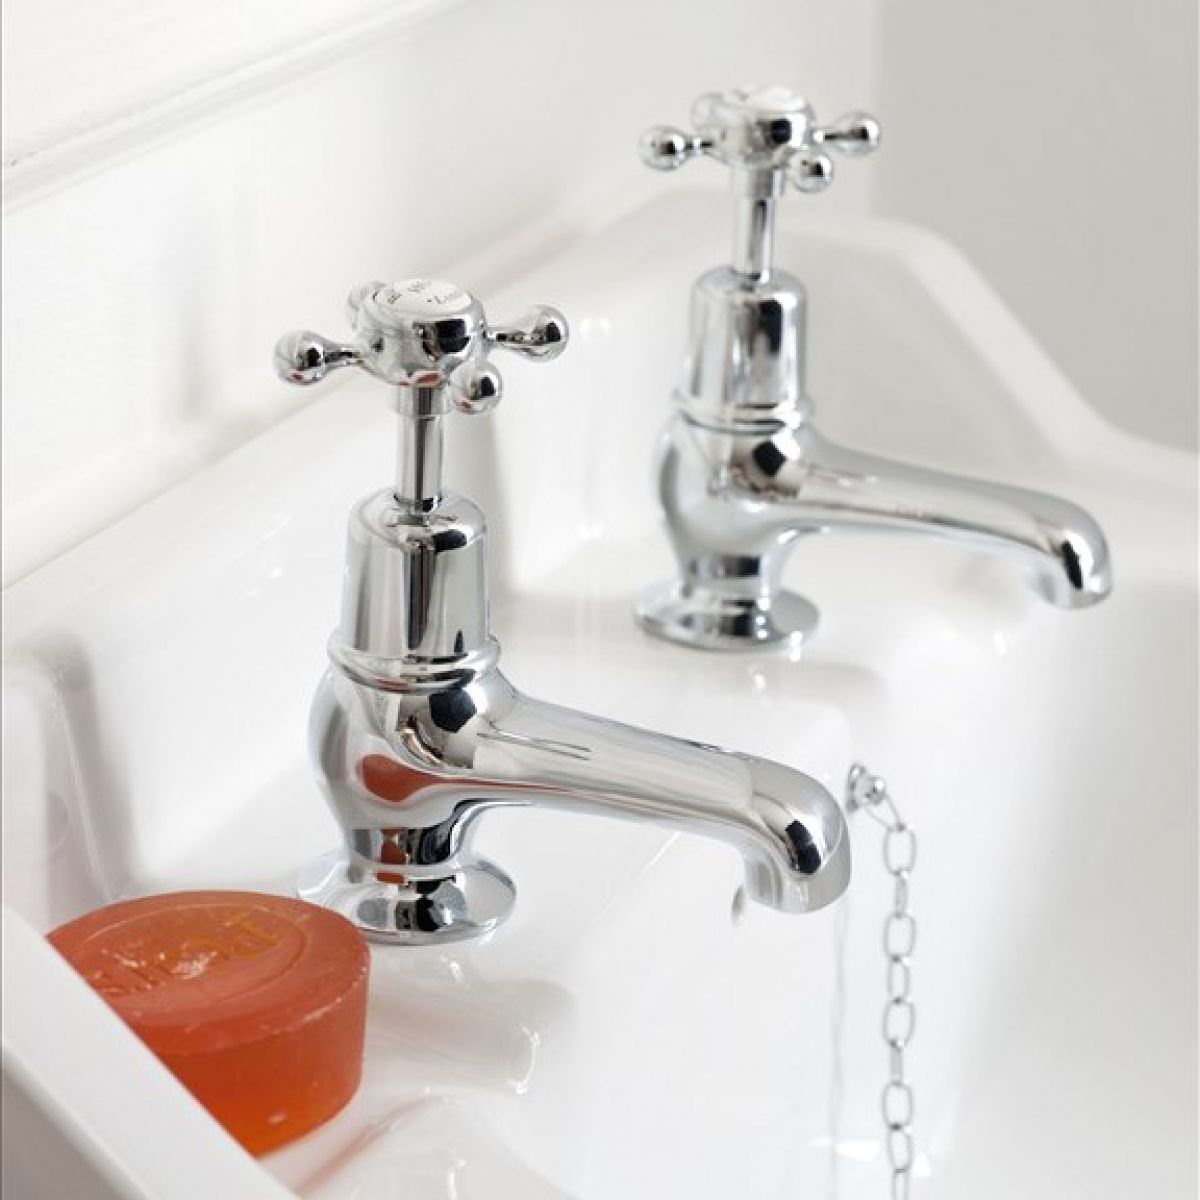 Burlington Claremont Cloakroom Taps